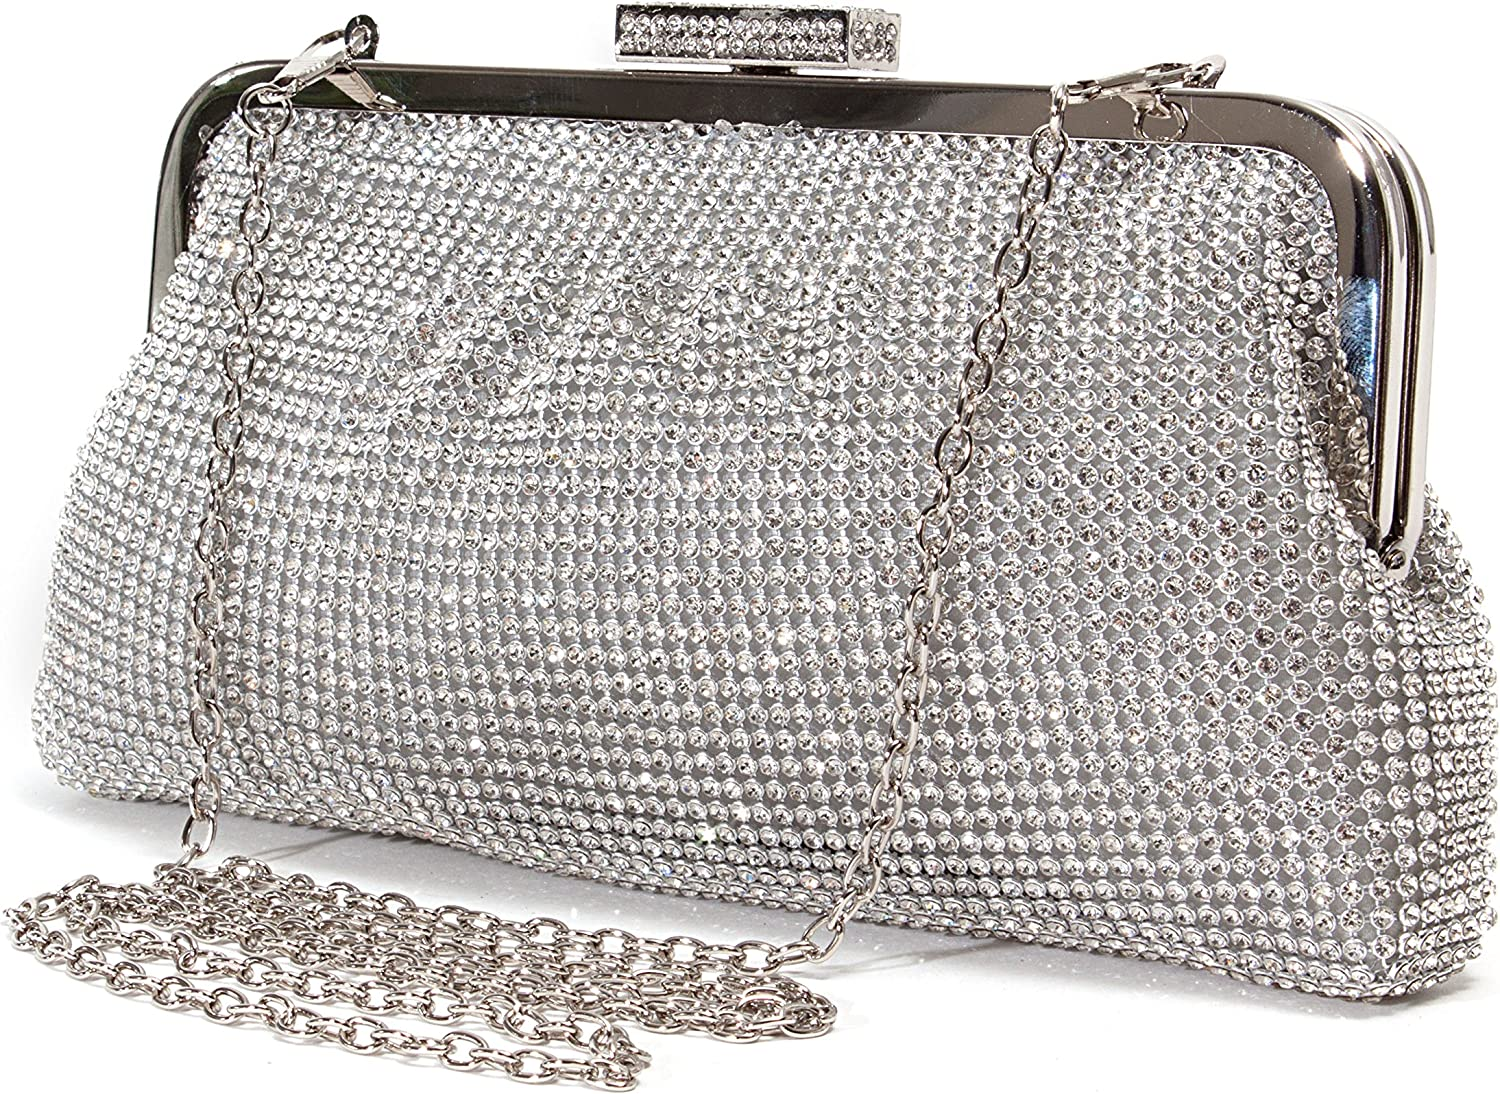 Lady Couture Soft Rhinestone Embellished Clutch Bag by, Bag 2015-7